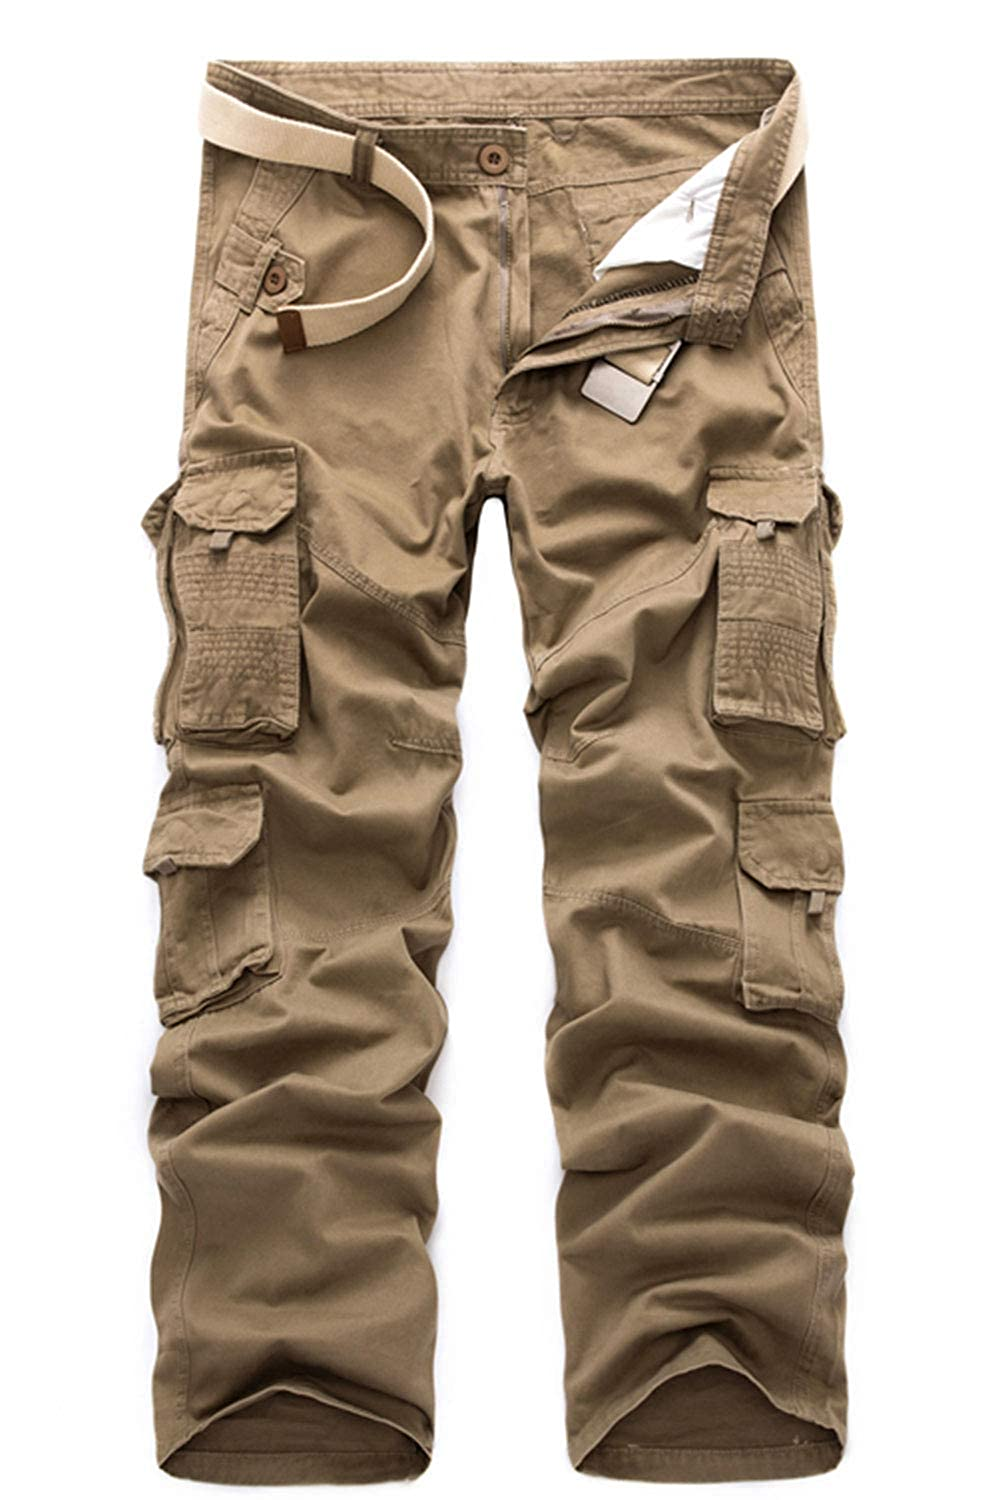 HSRKB Mens CAGO Pants Work Hiking Trousers Tactical Military Pants